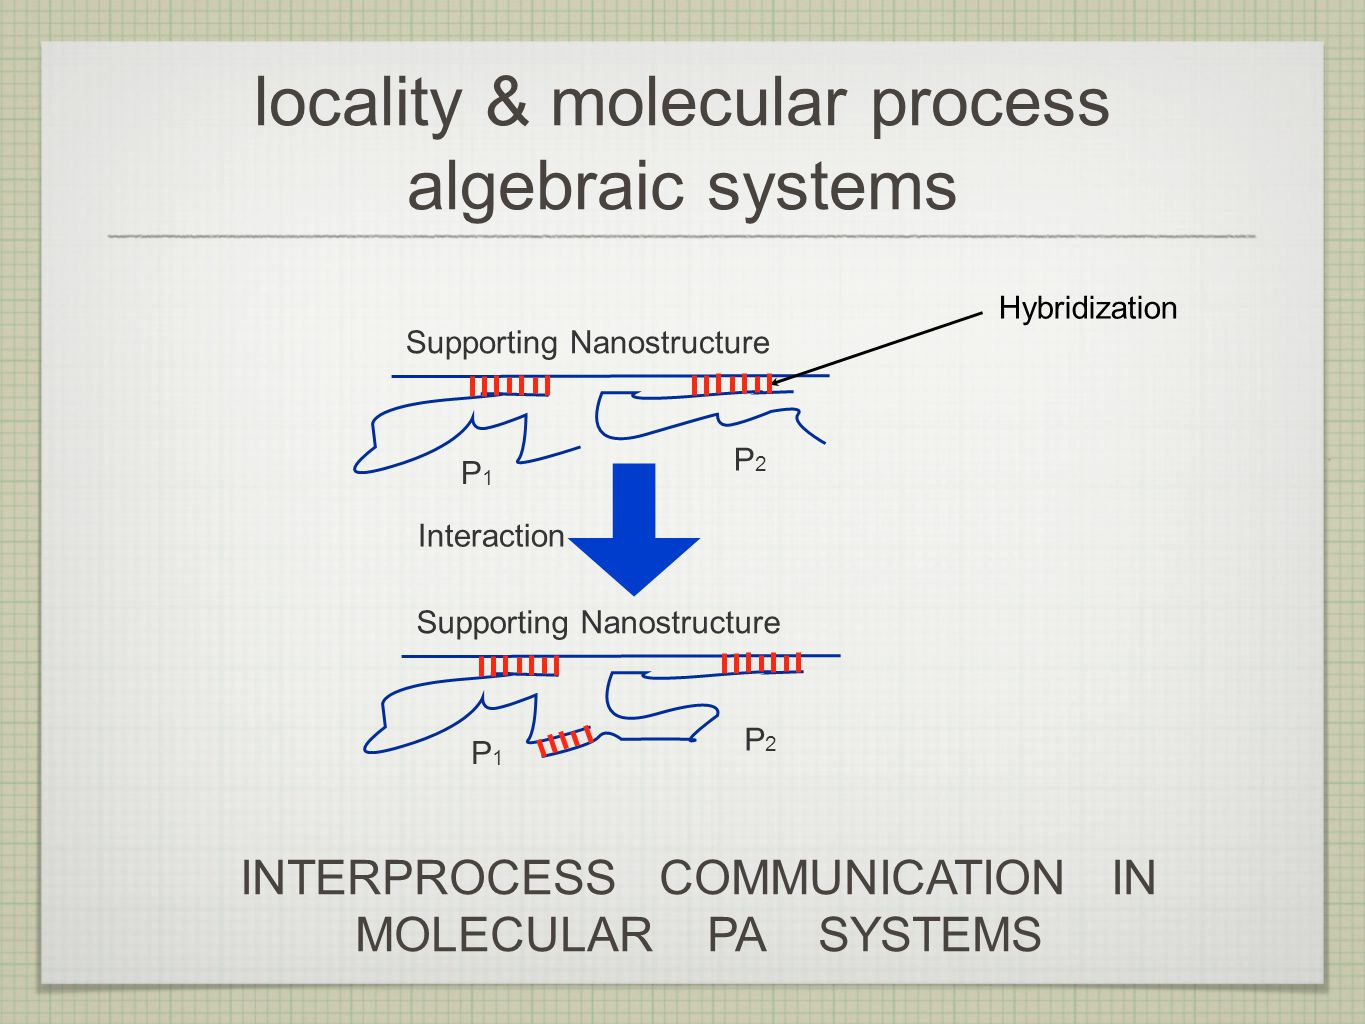 locality & molecular process algebraic systems Supporting Nanostructure P1P1 P2P2 P1P1 P2P2 Interaction Hybridization INTERPROCESS COMMUNICATION IN MOLECULAR PA SYSTEMS